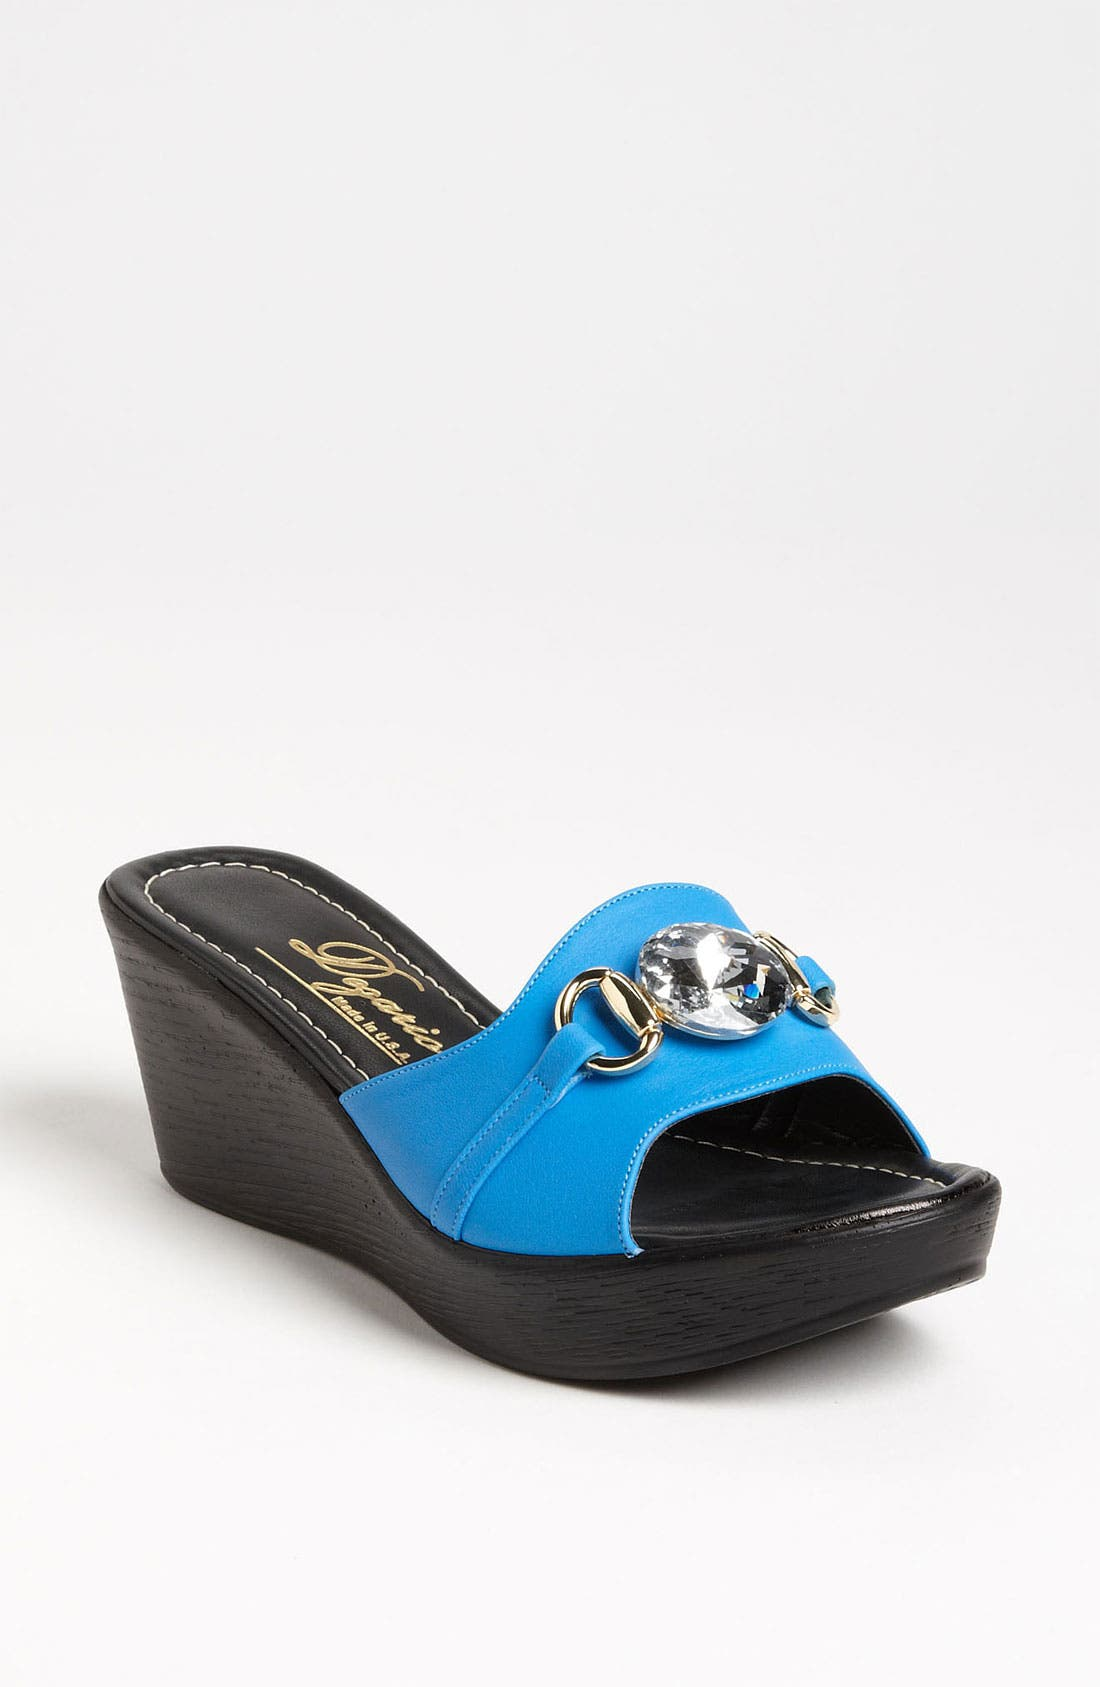 Alternate Image 1 Selected - Dezario 'Mode' Sandal